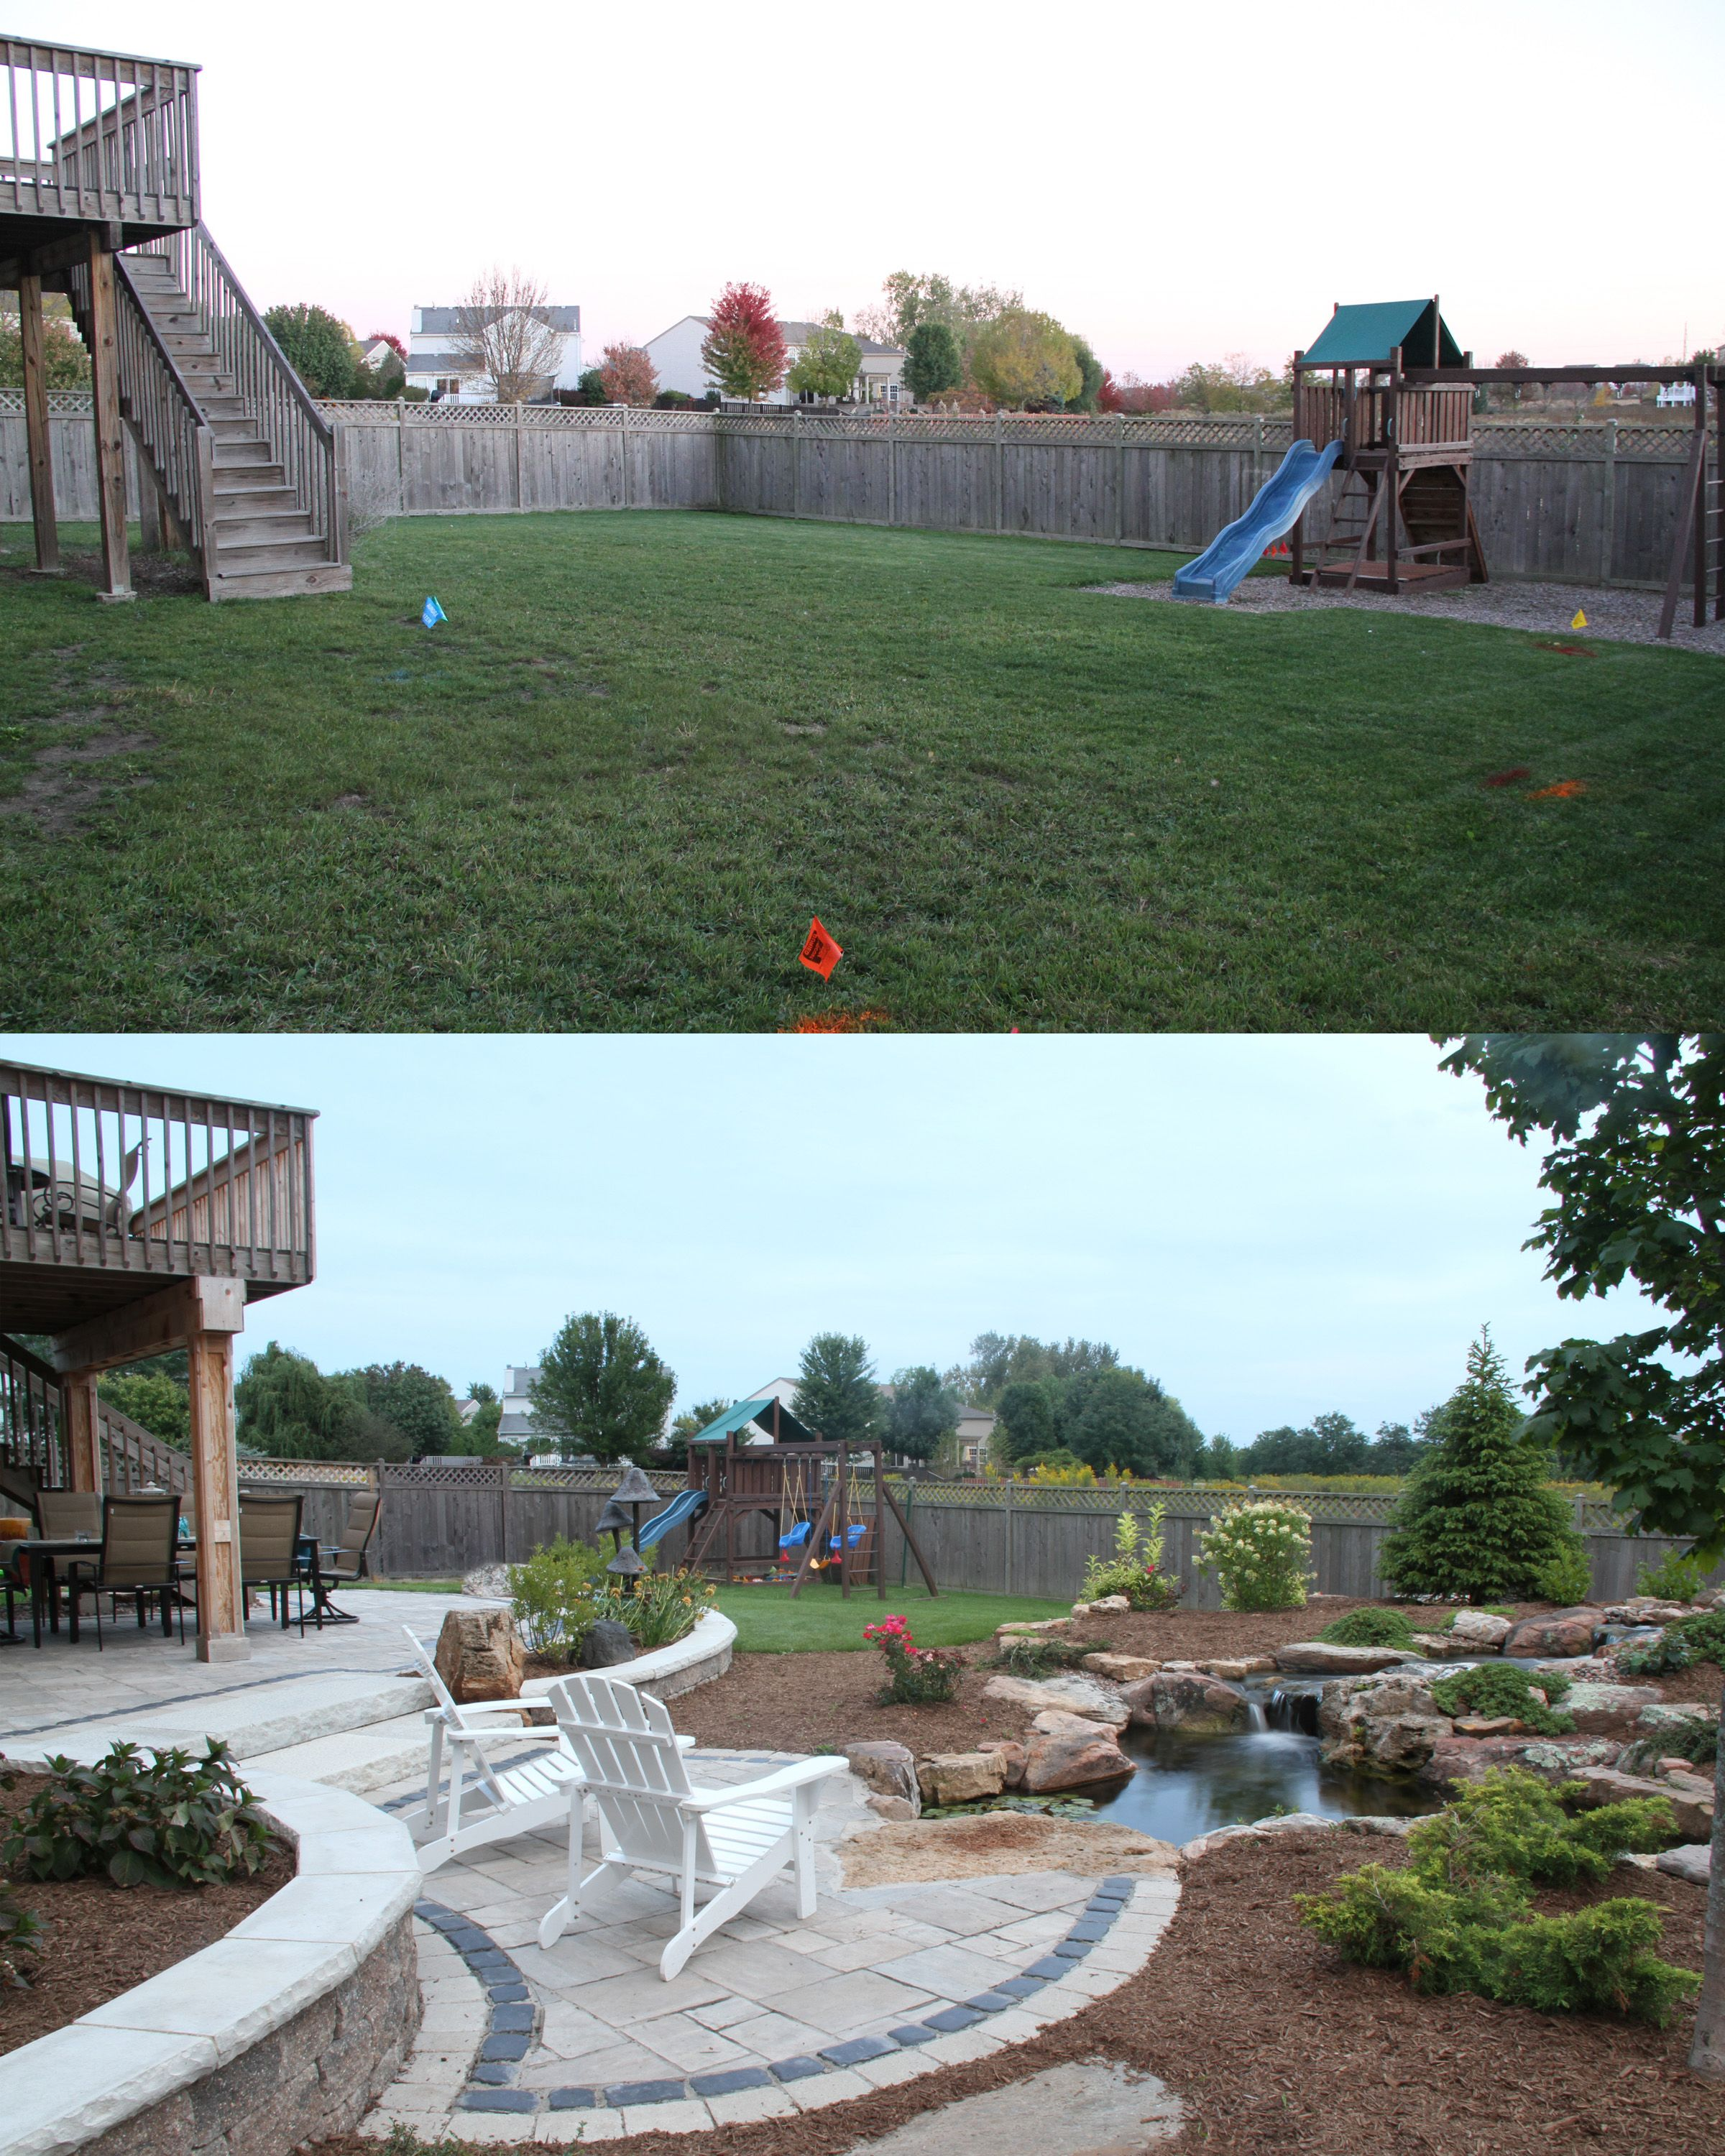 Transformation By Aquascape Designs In St. Charles, IL